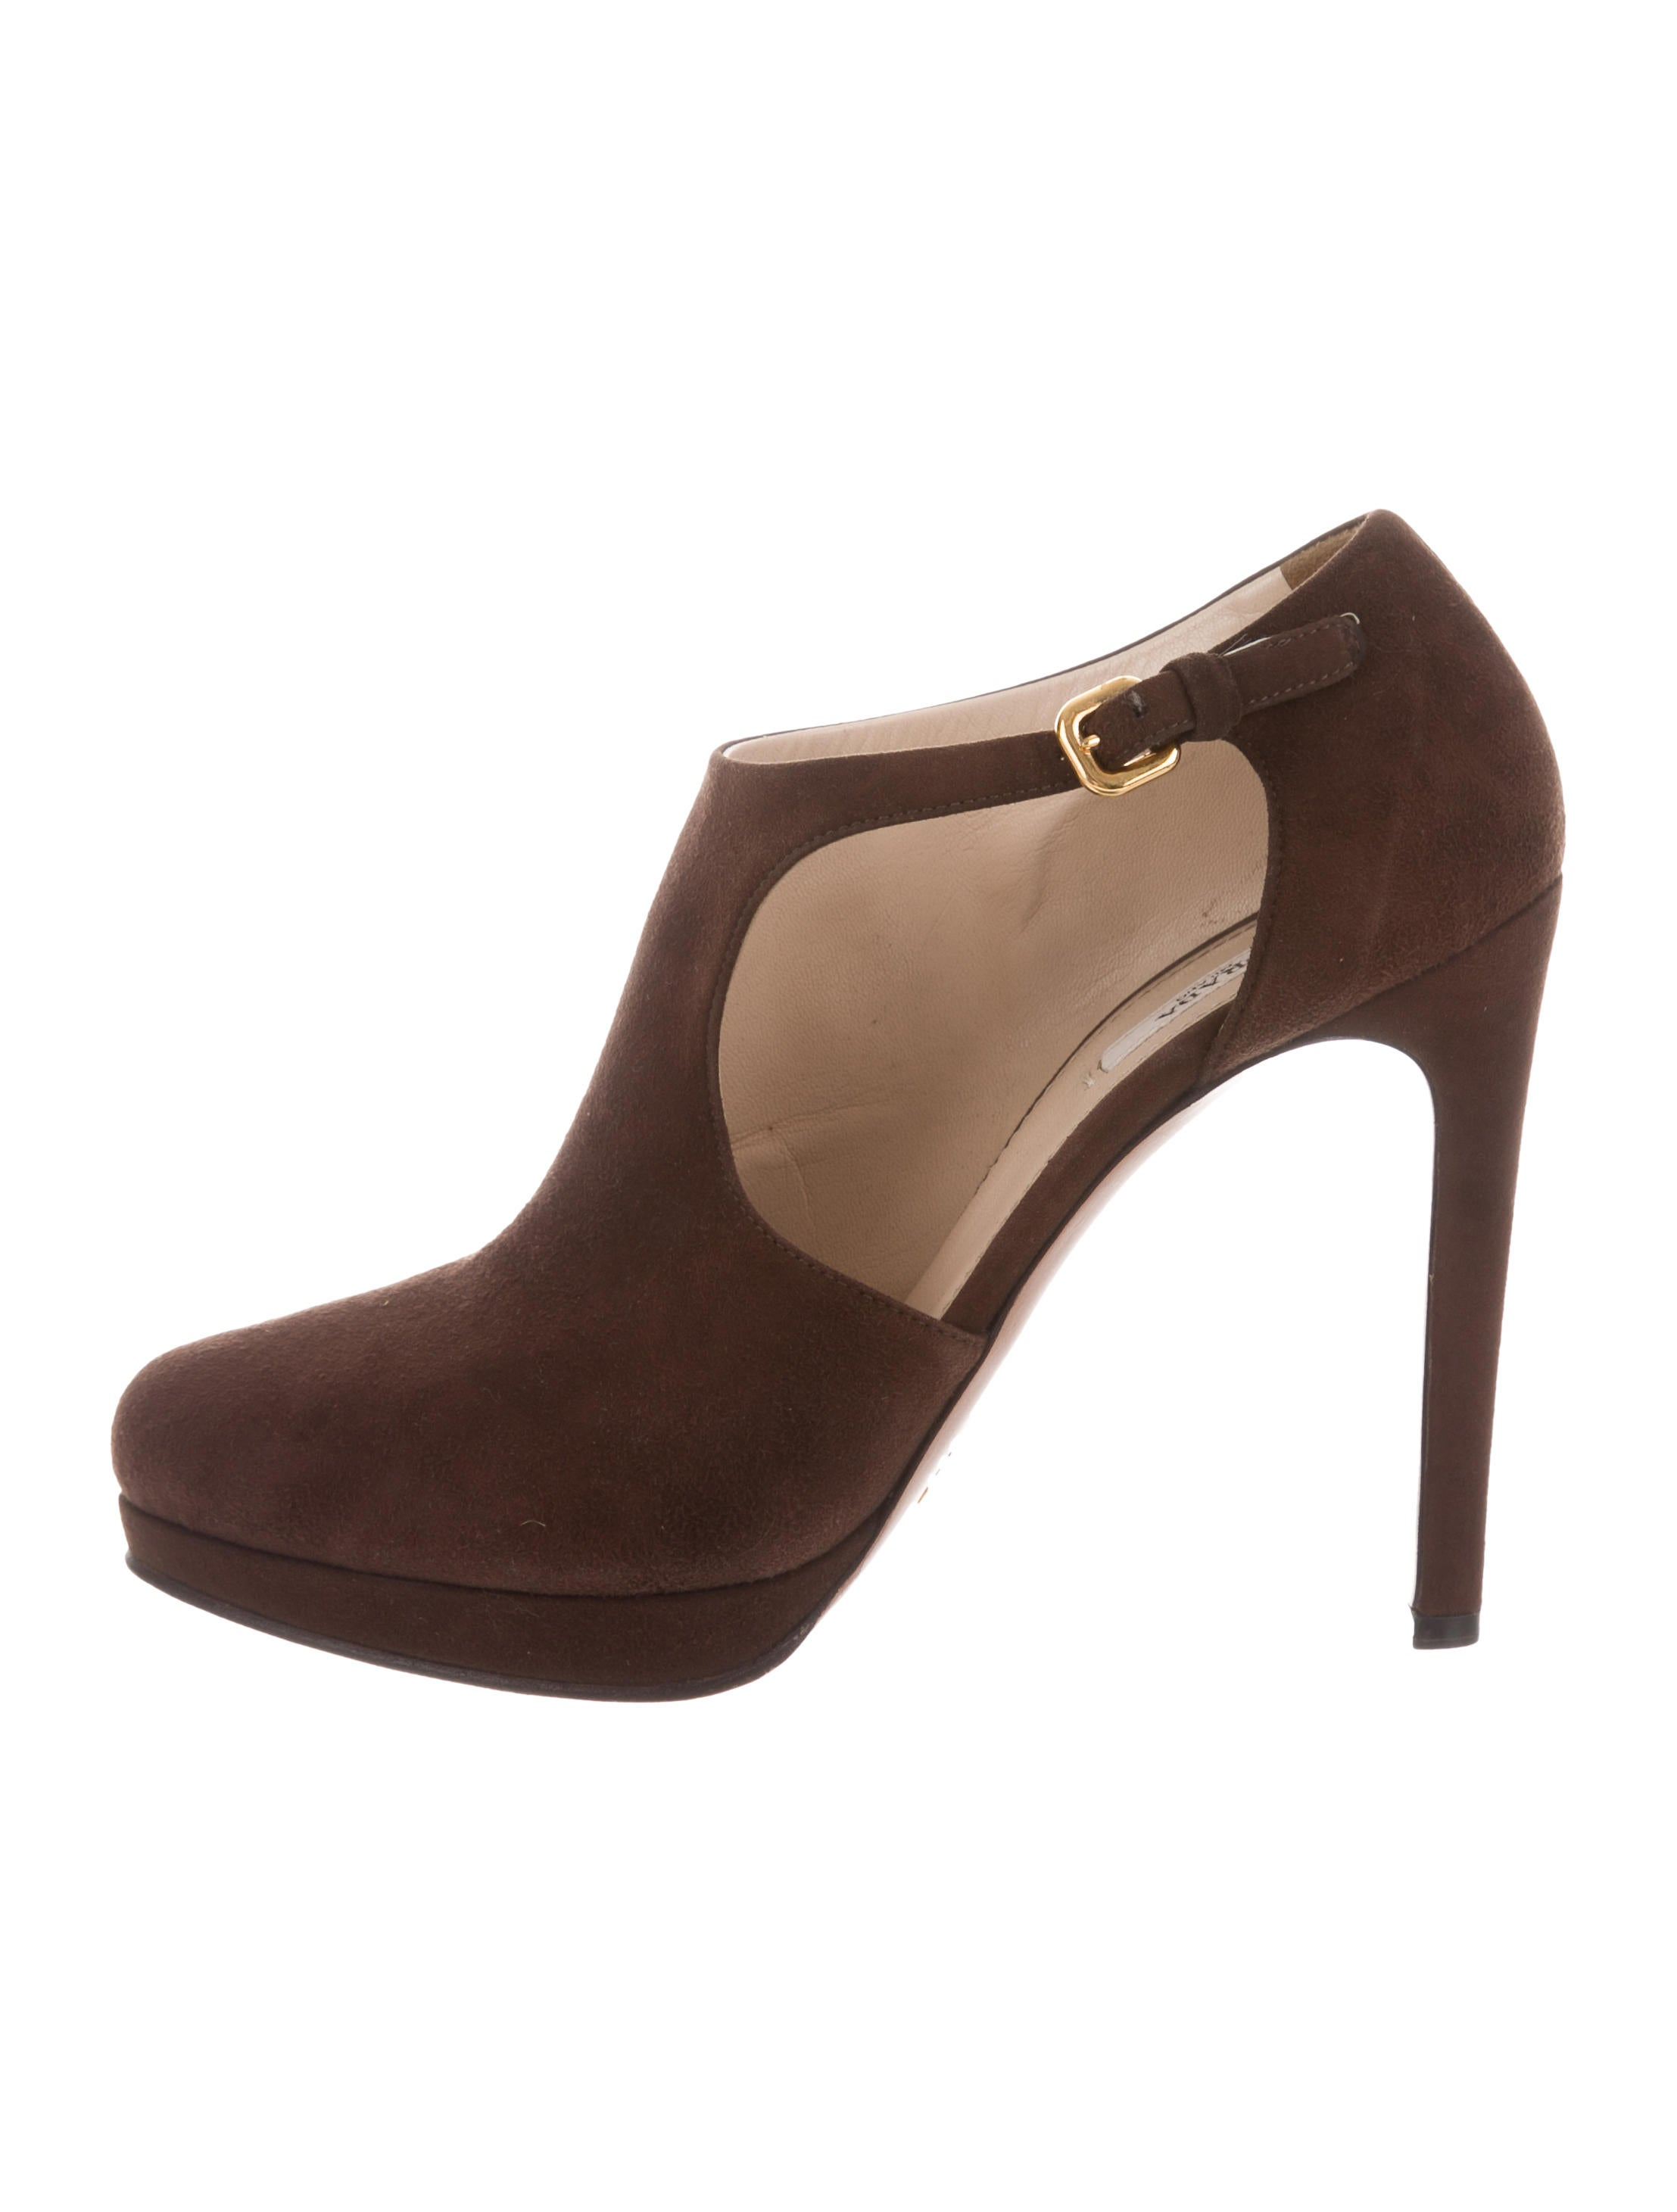 Prada Suede Round-Toe Booties cheap sneakernews cheap outlet locations free shipping best sale axrGsjGkJw